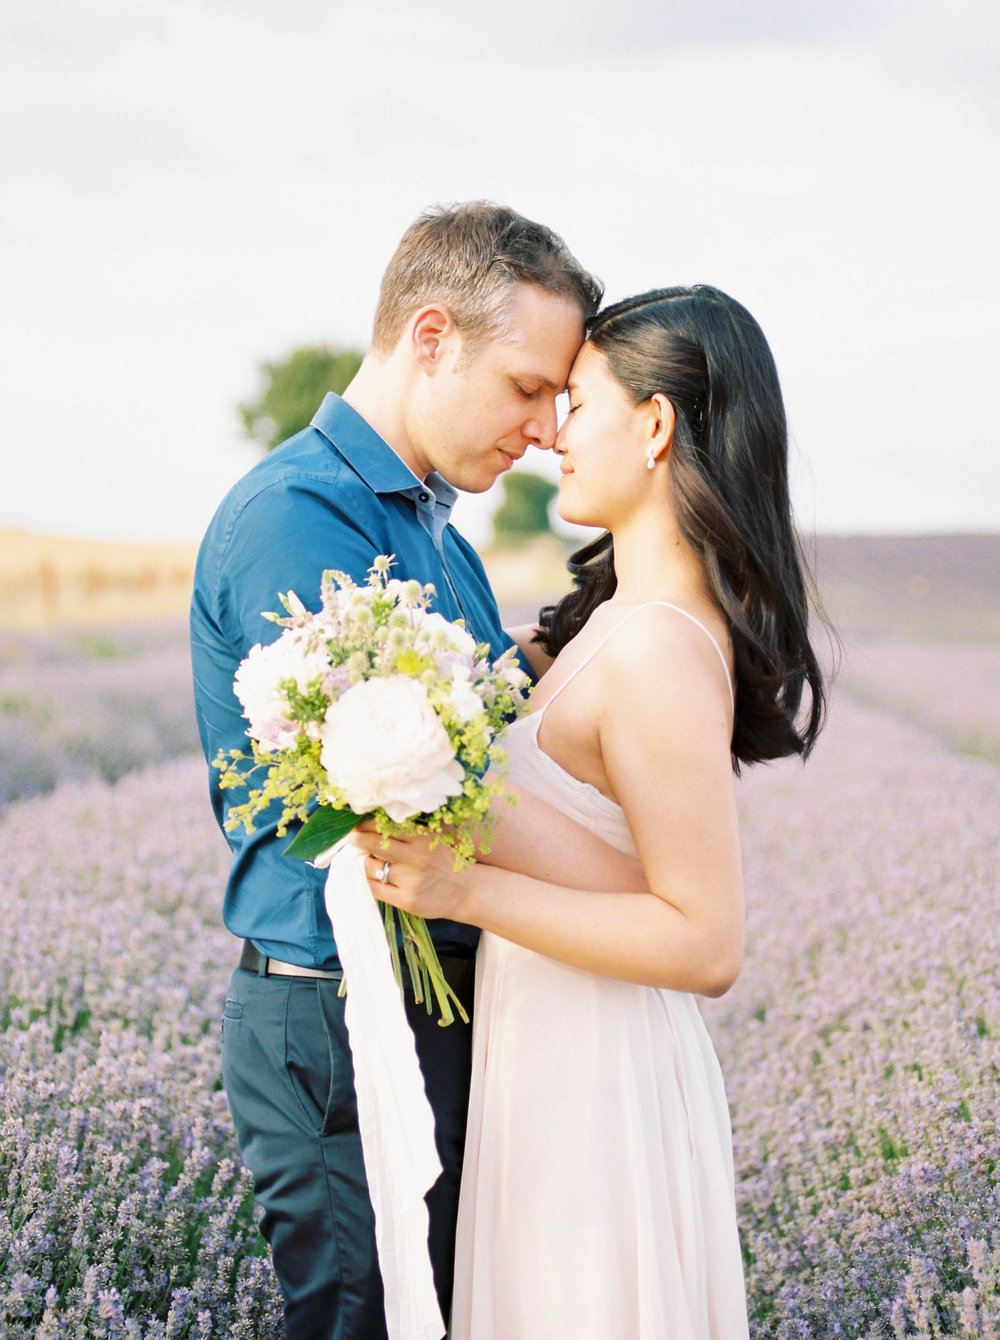 Amy O'Boyle Photography- Destination & UK Fine Art Film Wedding Photographer- Hitchin Lavender Engagement Shoot-13.jpg